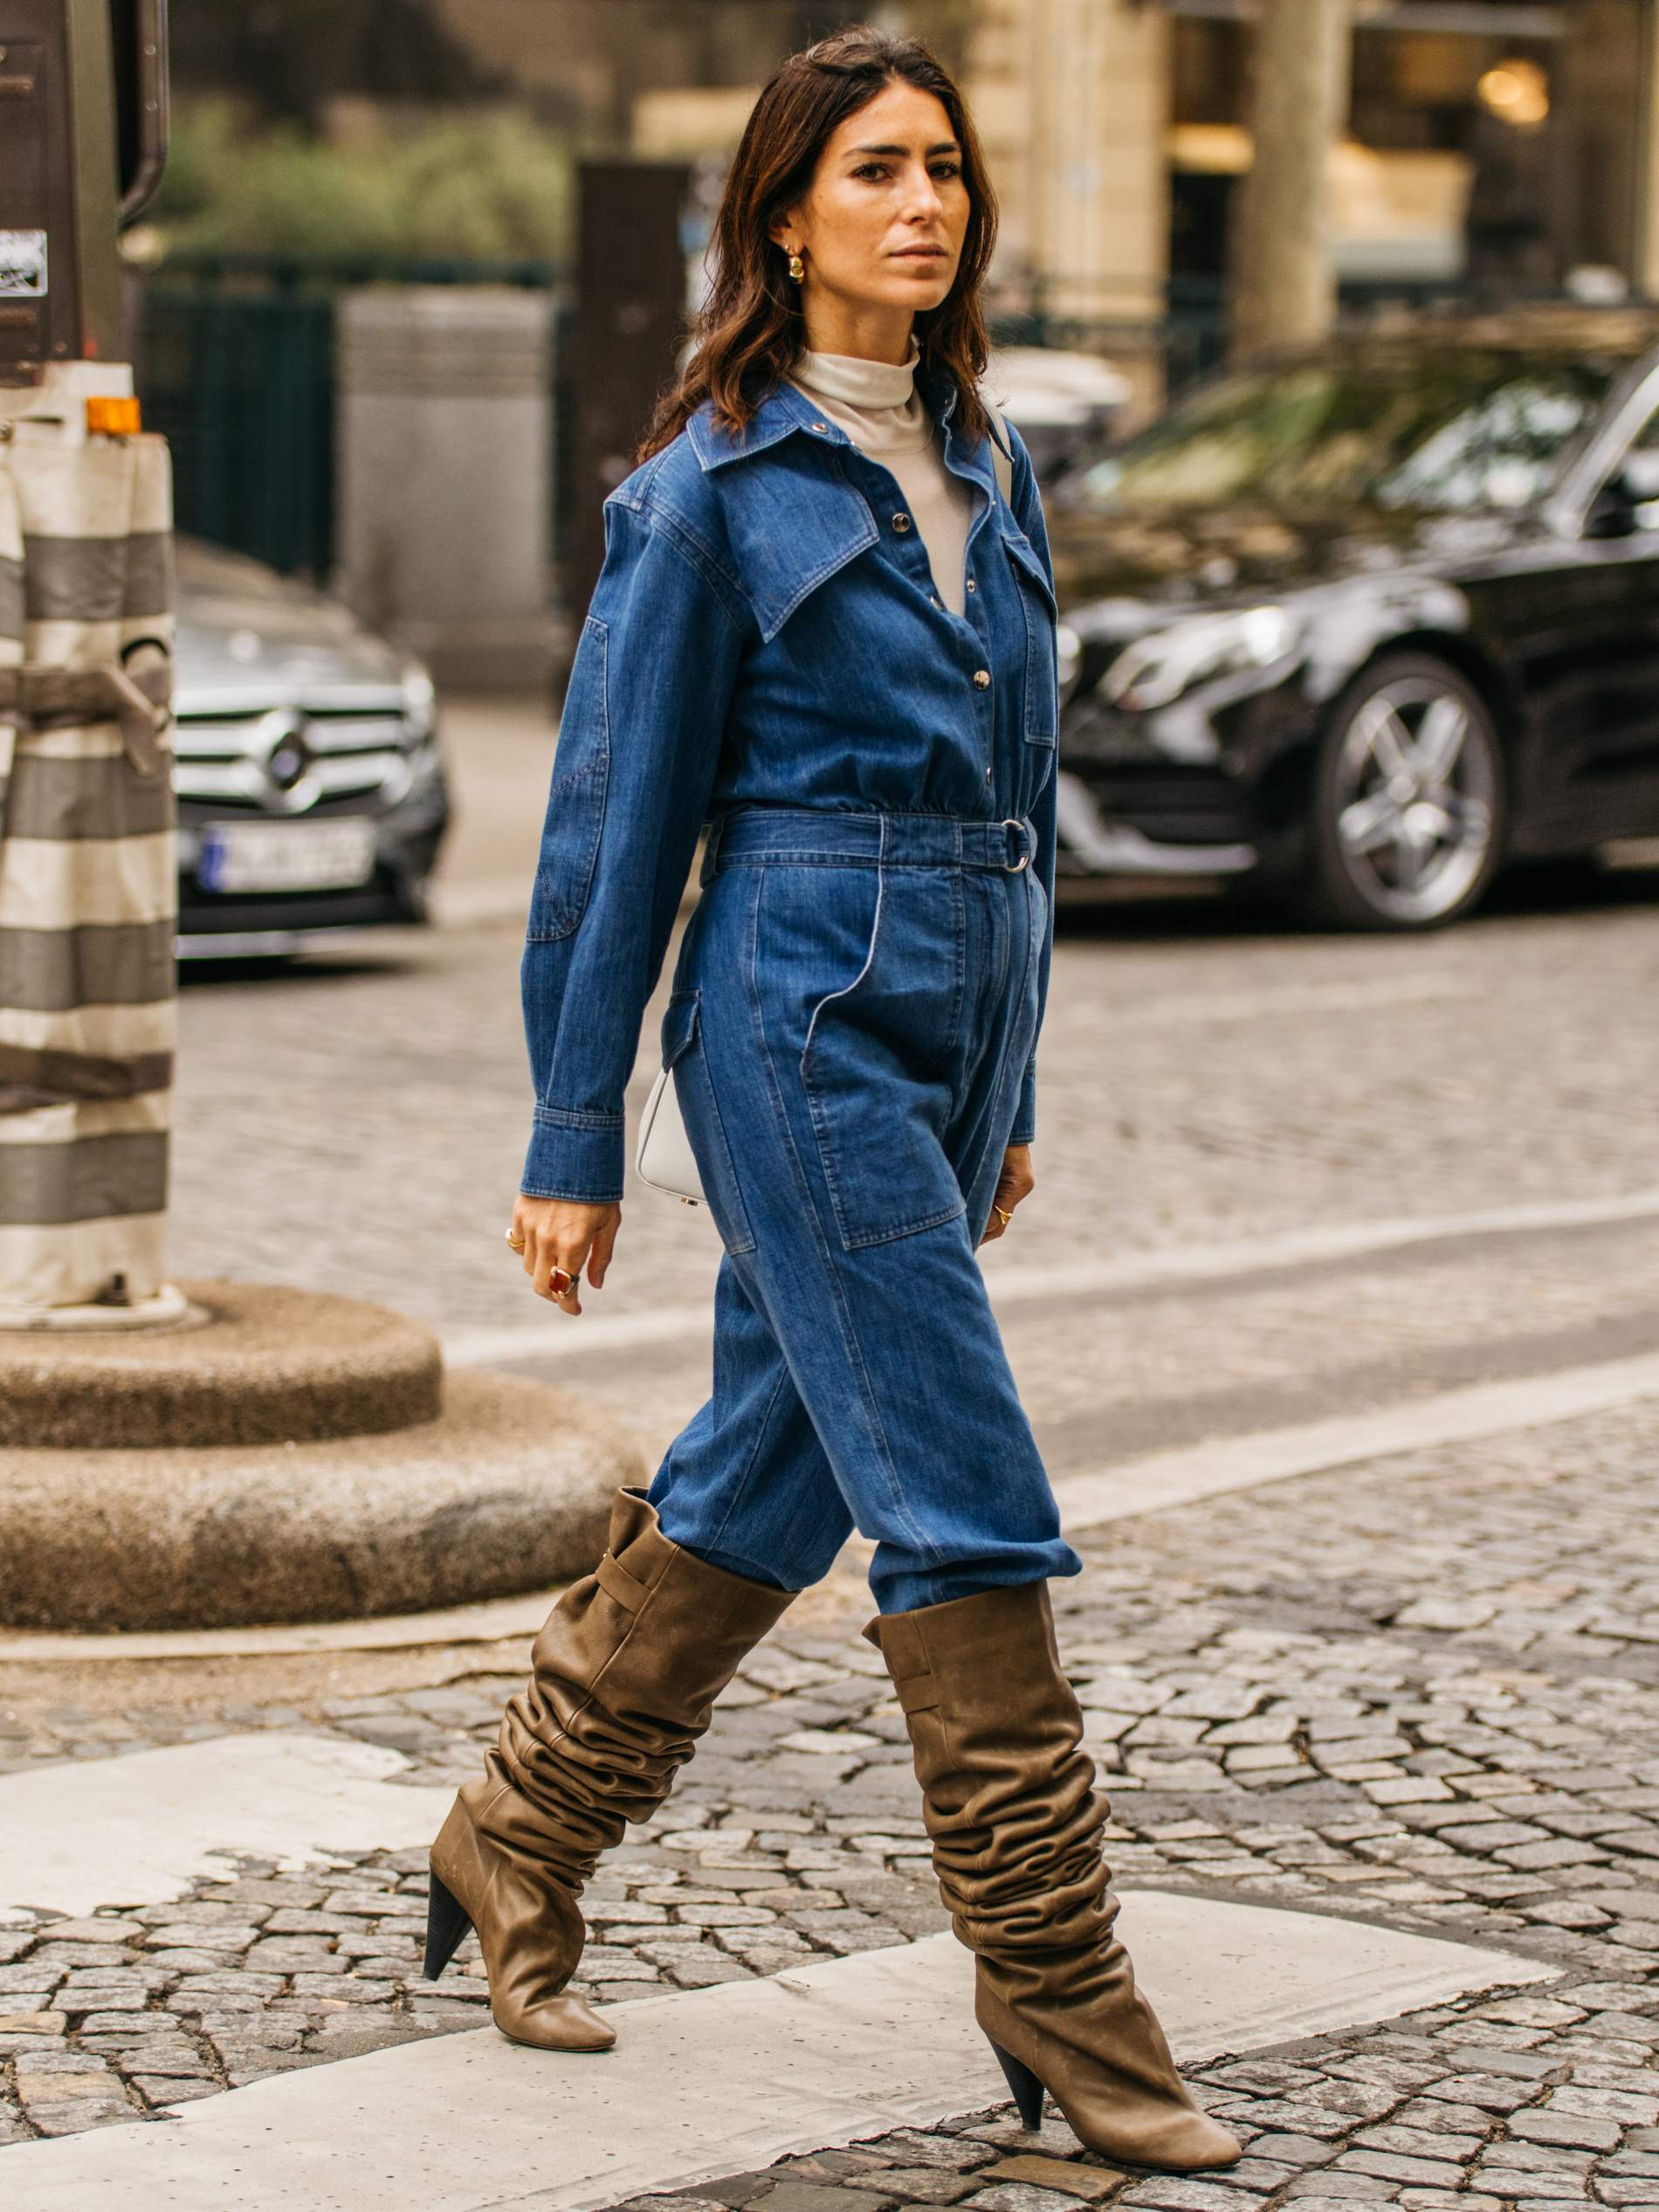 Denim Trends 2020: The Best New Styles & Coolest Shapes